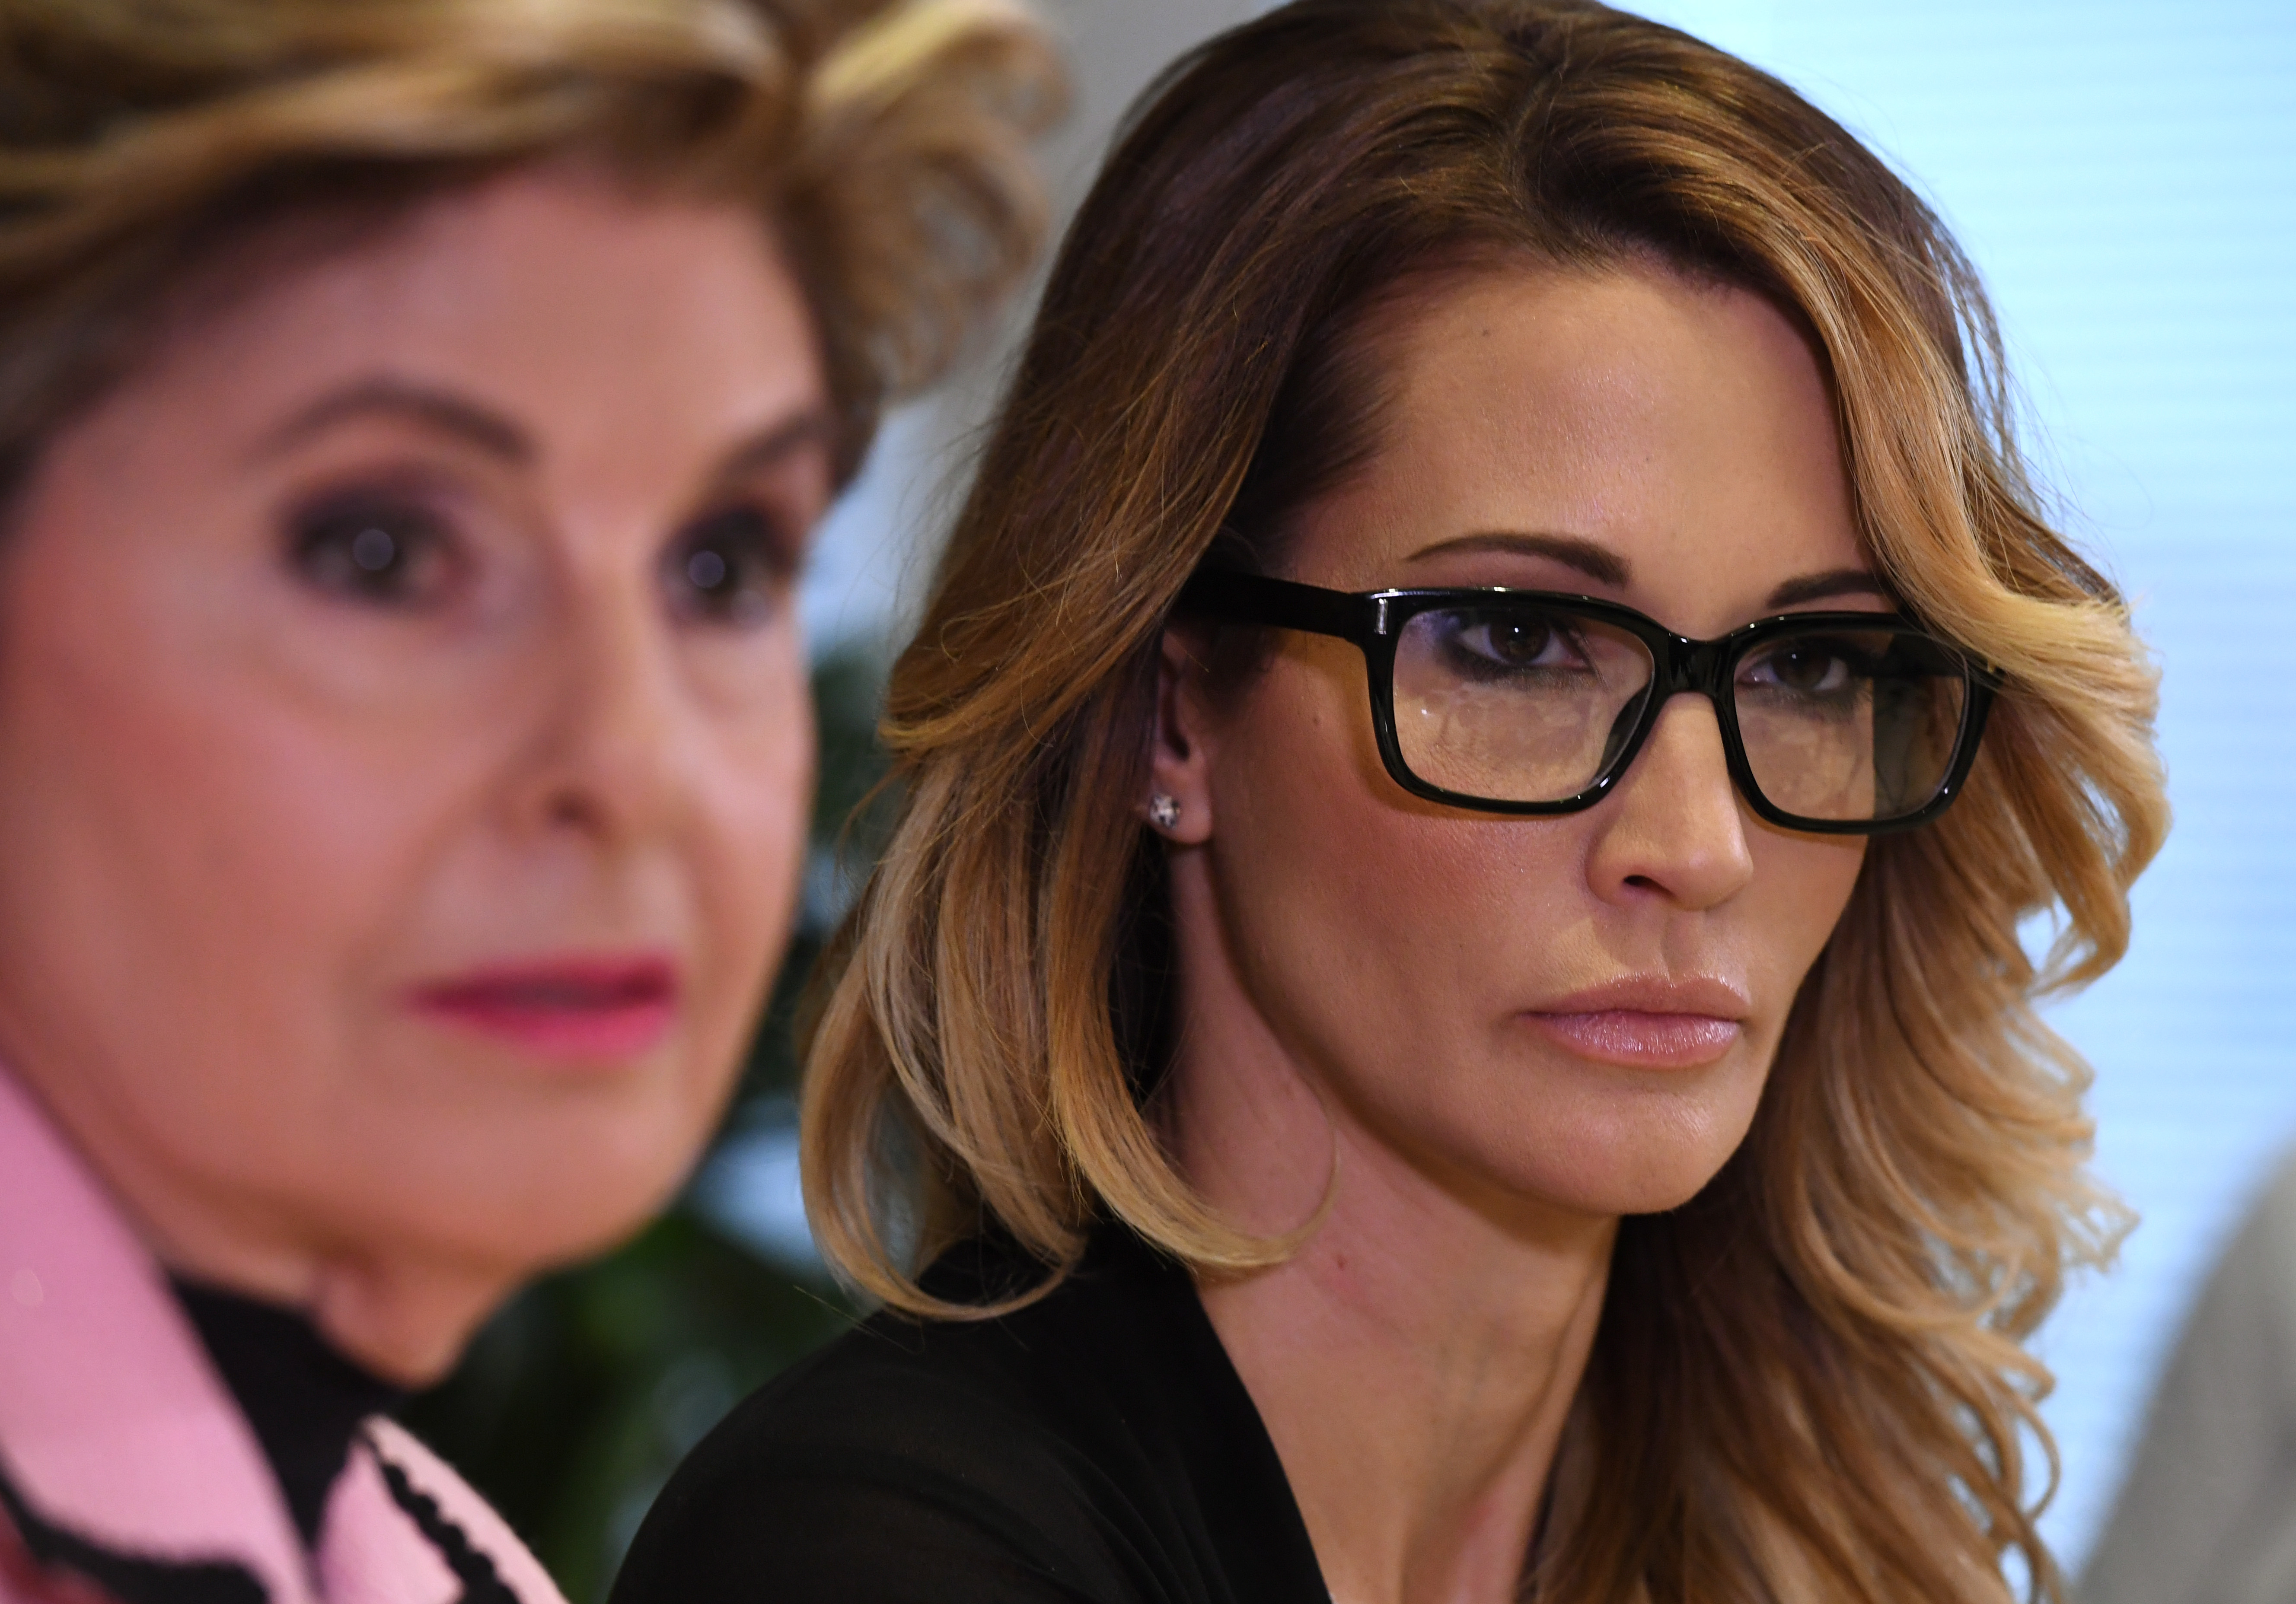 Jessica Drake (R), who works for an adult film company, speaks beside attorney Gloria Allred about allegations of sexual misconduct against Republican presidential hopeful Donald Trump during a press conference in Los Angeles on October 22, 2016.  / AFP / Mark RALSTON        (Photo credit should read MARK RALSTON/AFP/Getty Images)